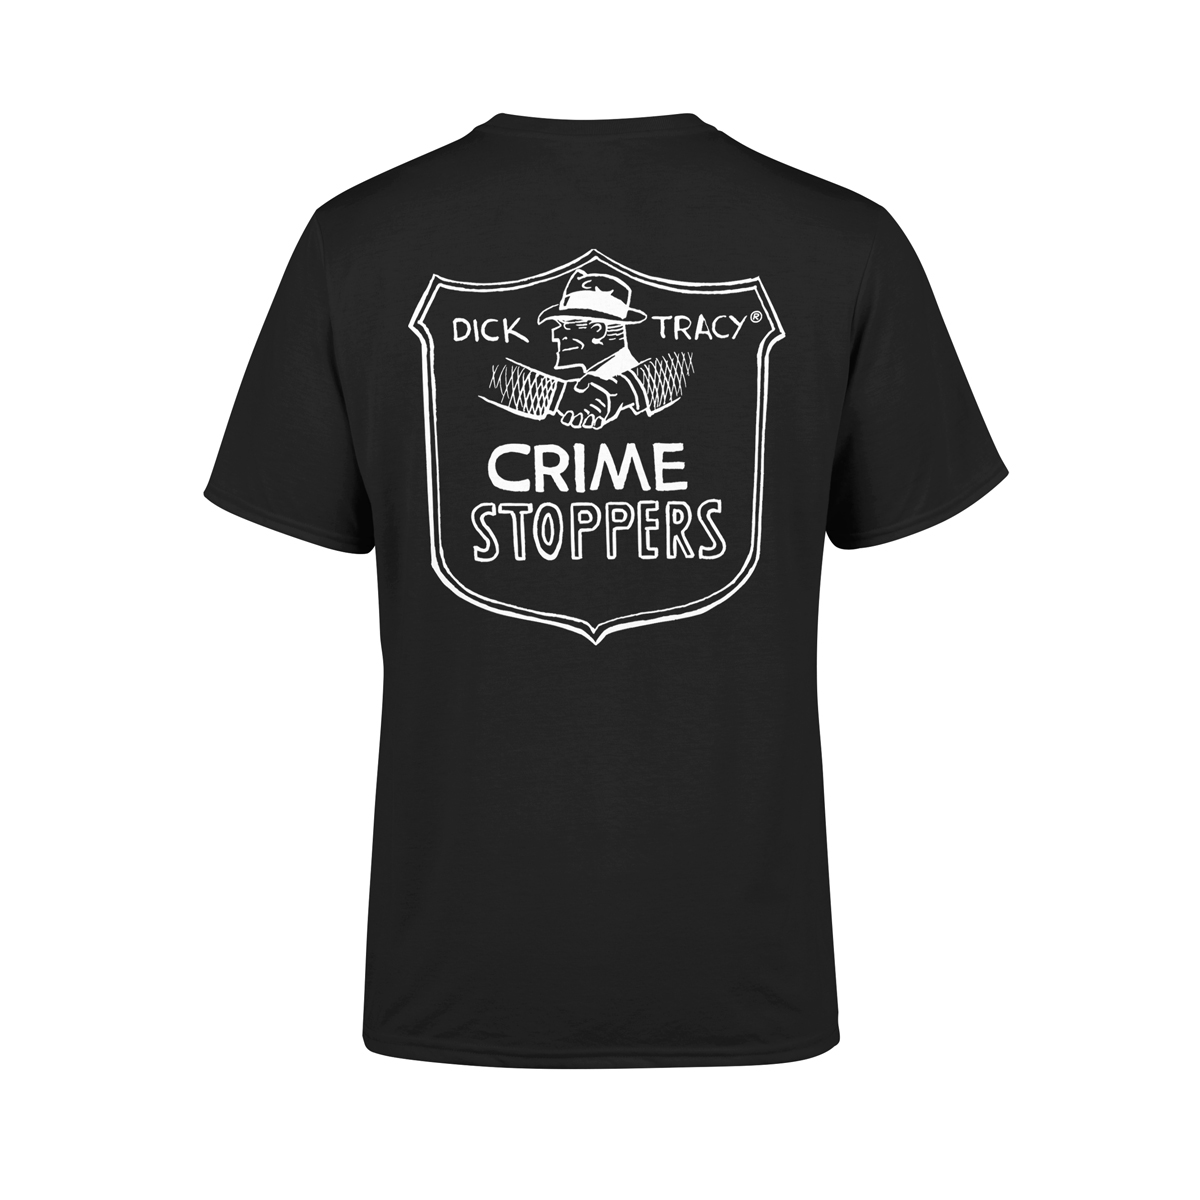 Dick Tracy Wanted Stooge Viller T-Shirt